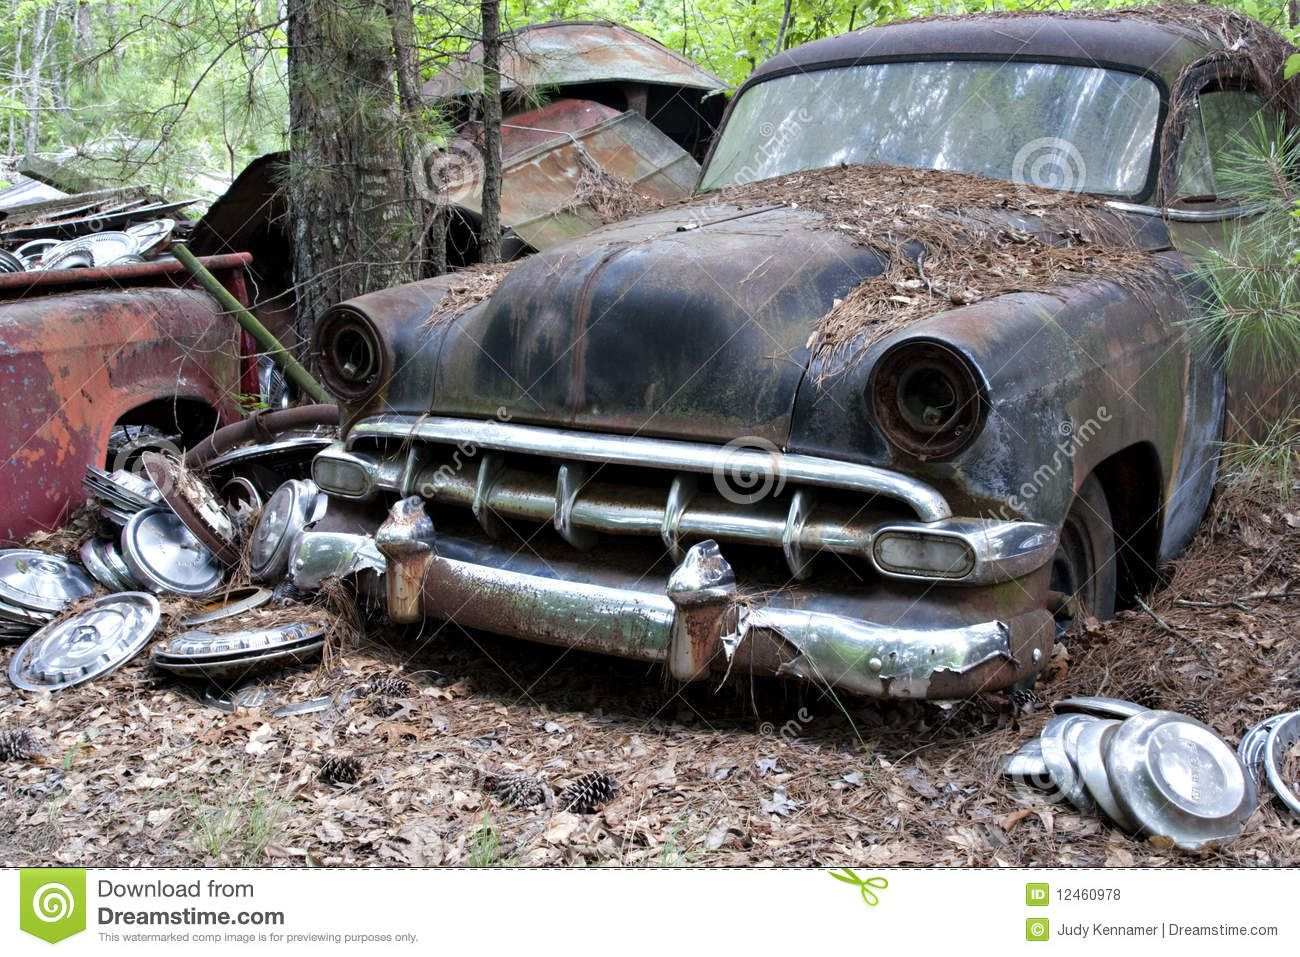 junkyards - Google Search | junkyard heaven | Pinterest | Abandoned ...